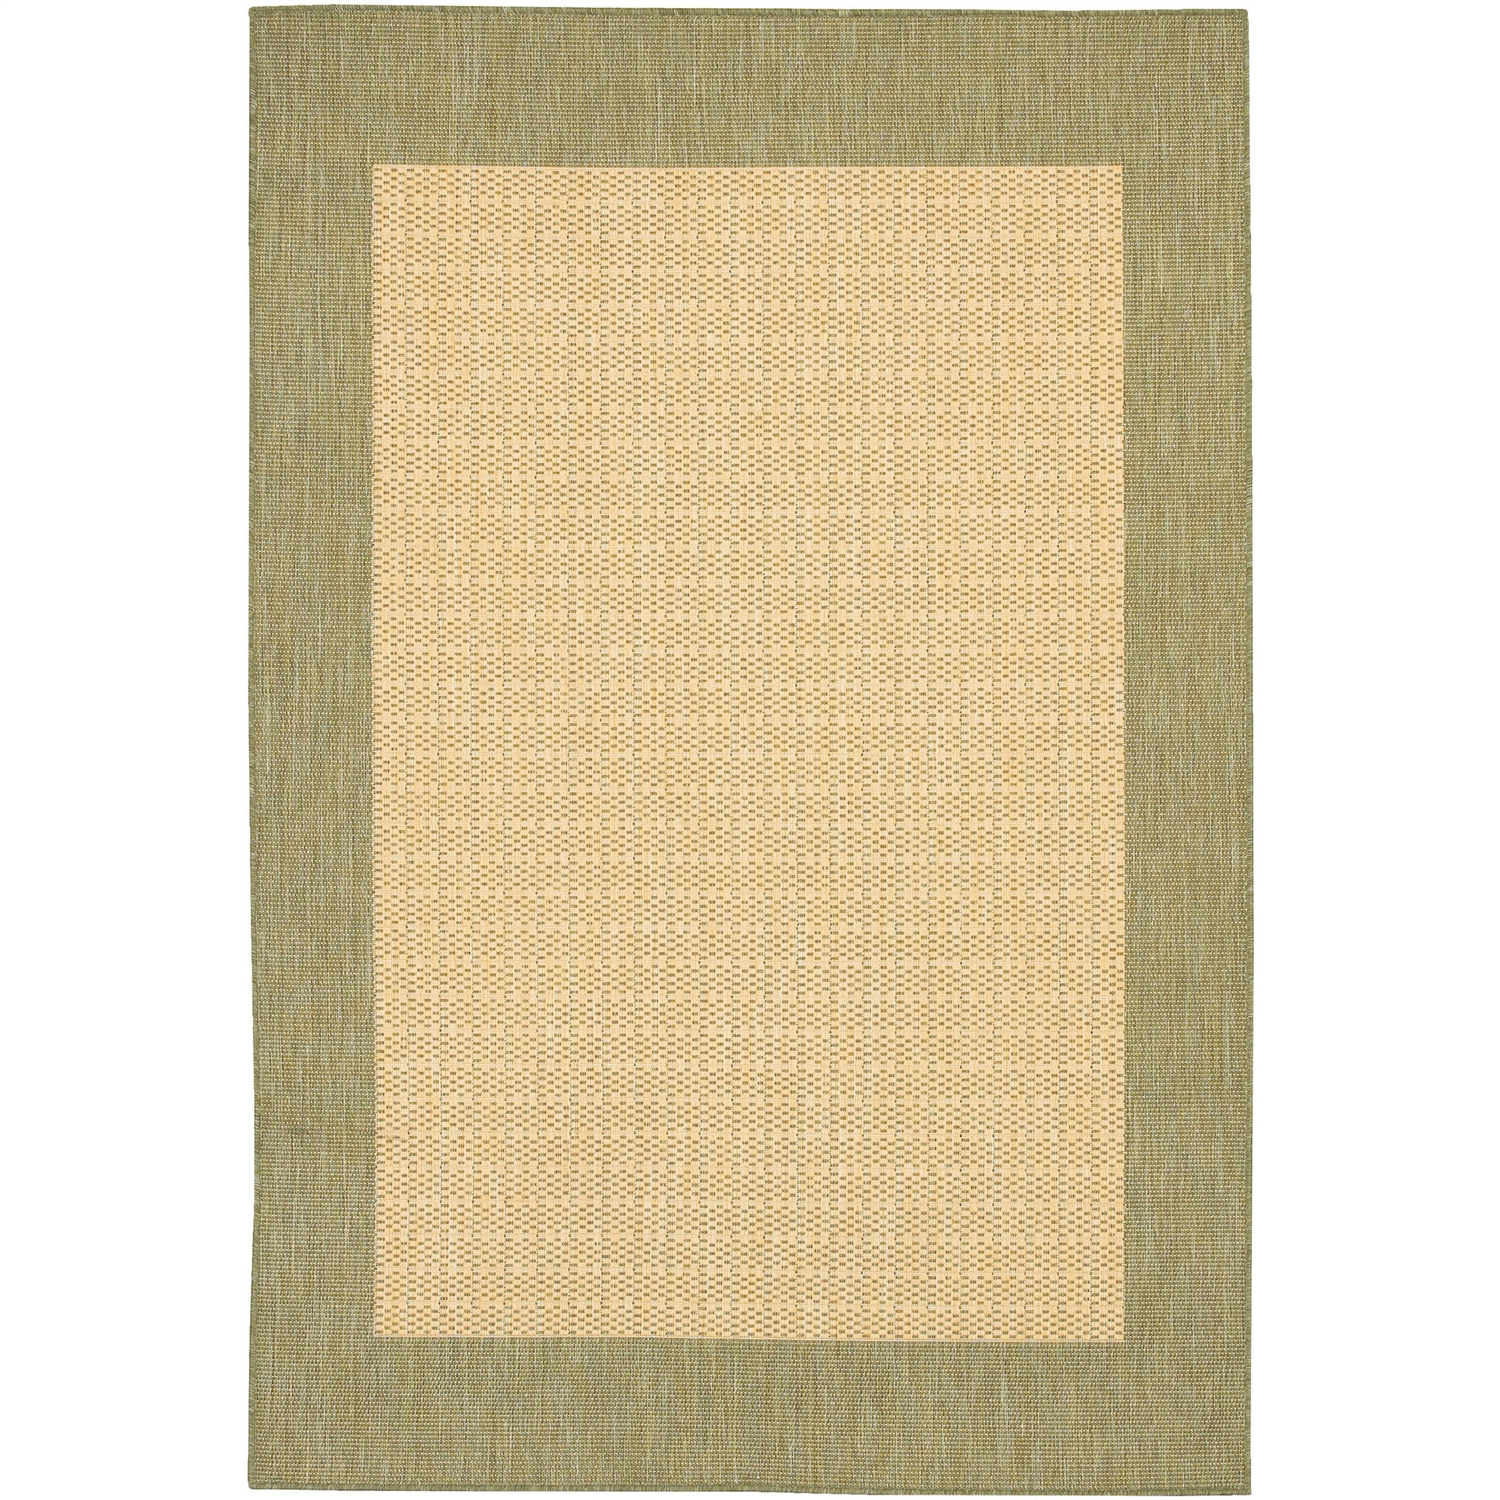 3'9 x 5'5 Checkered Area Rug in Green Tan for Indoor Outdoor Rug, CFR495151 :  This 3'9 x 5'5 Checkered Area Rug in Green Tan for Indoor Outdoor Rug would be a great addition to your home. It has a natural color and is made of 100% fiber-enhanced polypropylene. Border Material: Synthetic; Border Color: Natural; Material: Synthetic; Material Details: Polypropylene; Reversible: No; Rug Pad Needed: Yes; Water Resistant: Yes; Mildew Resistant: Yes. Eco-Friendly: No; Outdoor Use: Yes; Product Care: Vacuum frequently. Have professionally cleaned when needed. Country of Manufacture: Belgium; Product Warranty: 1 year limited warranty.